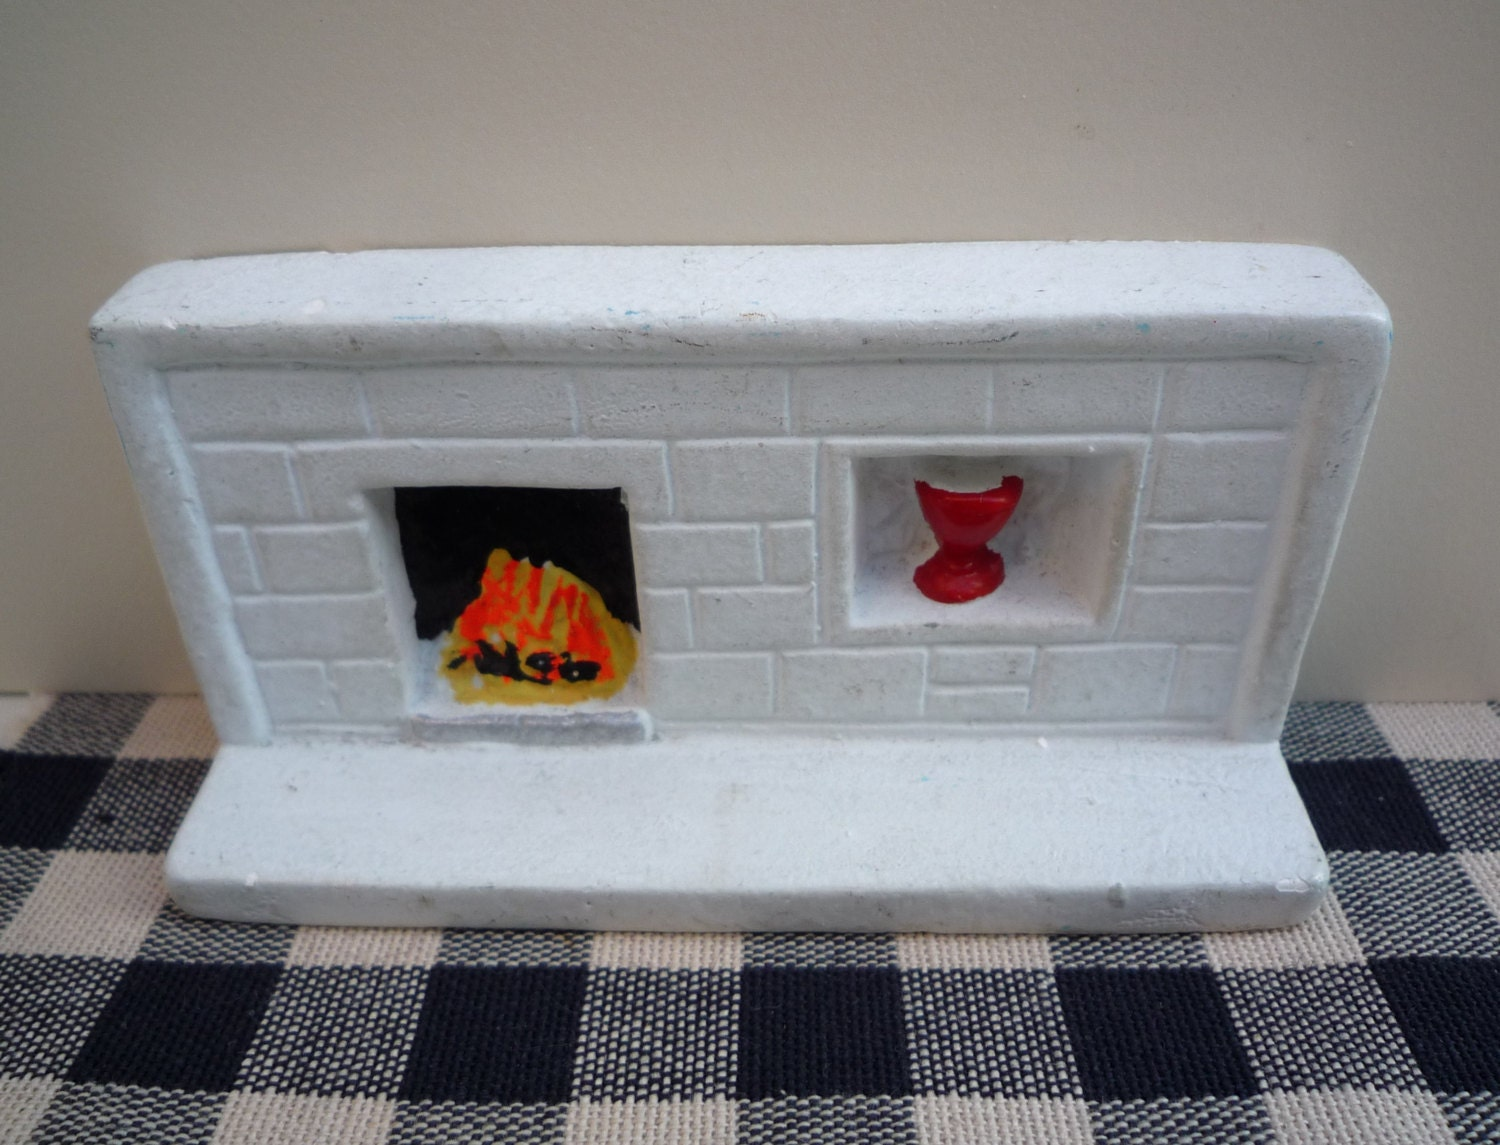 Mid Century Dol Toi Barnack Fireplace, Vintage Dolls House Miniature  Furniture, 1:16 Scale Plaster White Fireplace Mantelpiece And Shelf.